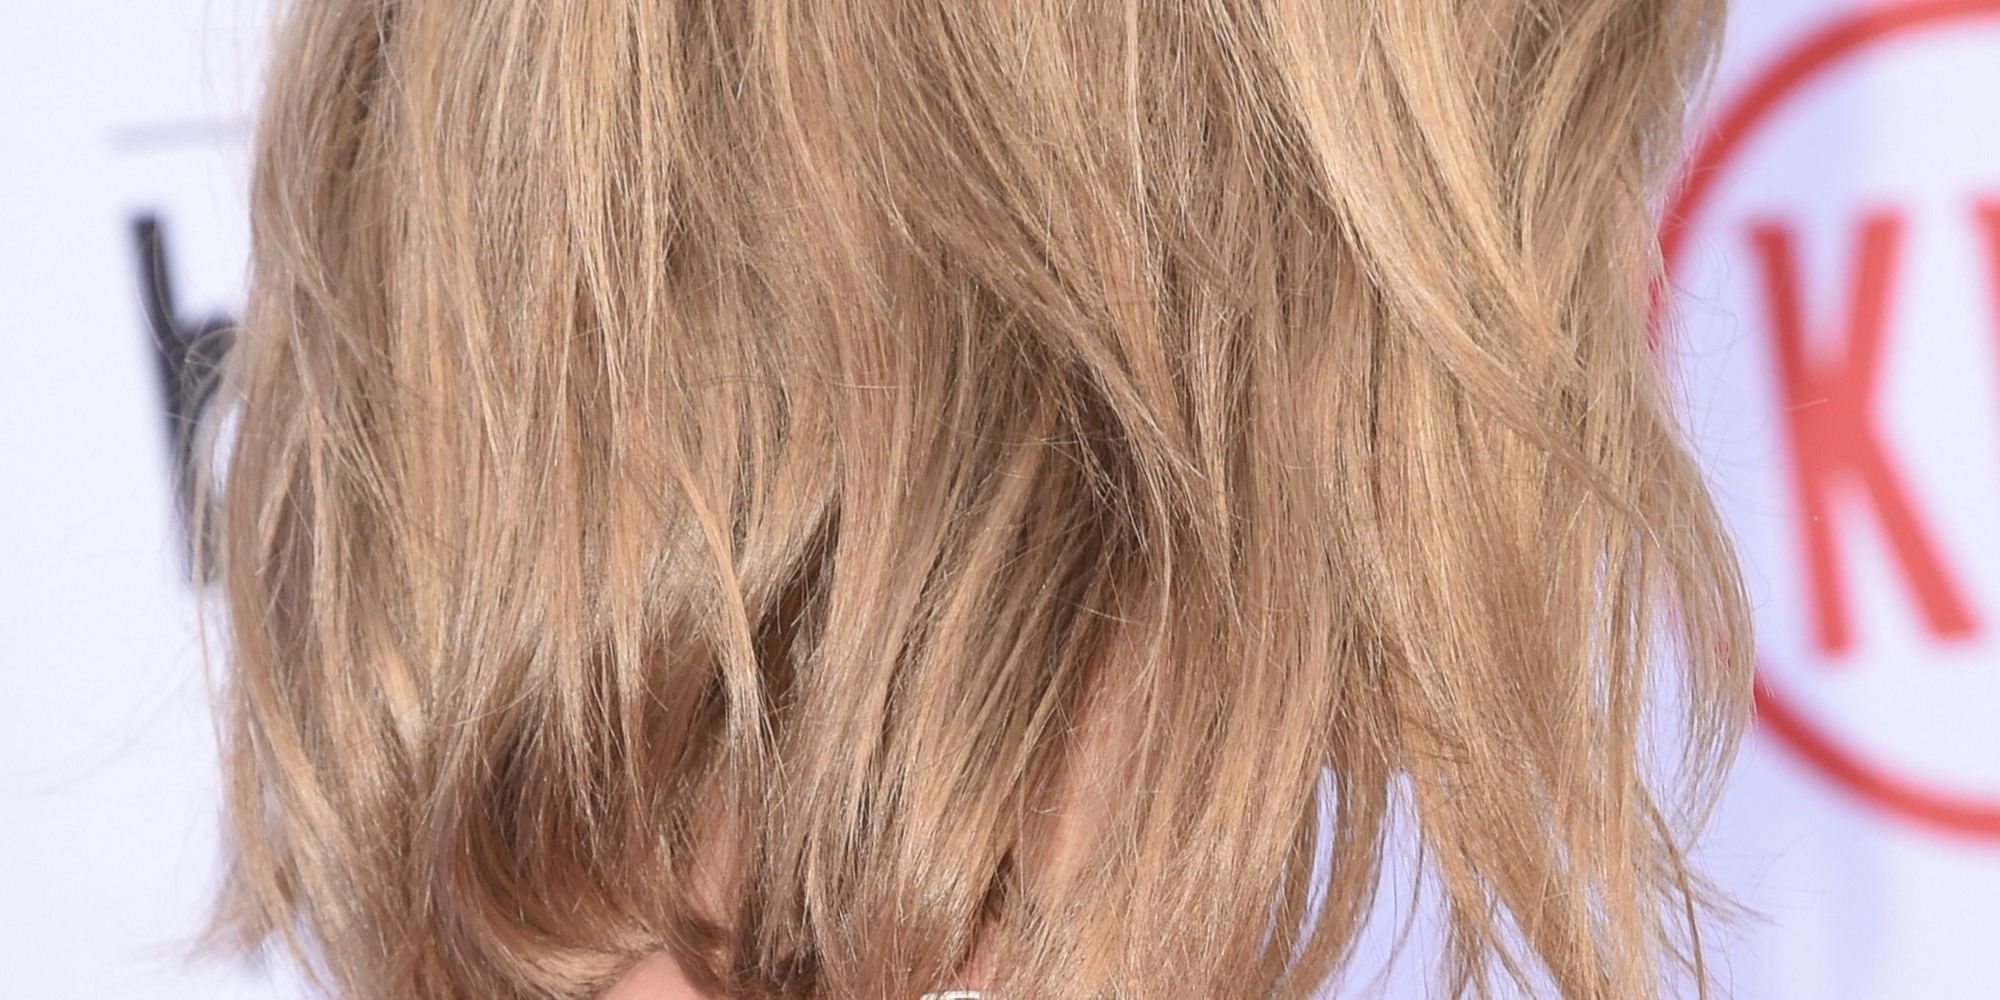 champagne blonde hair is the perfect hair color for pale